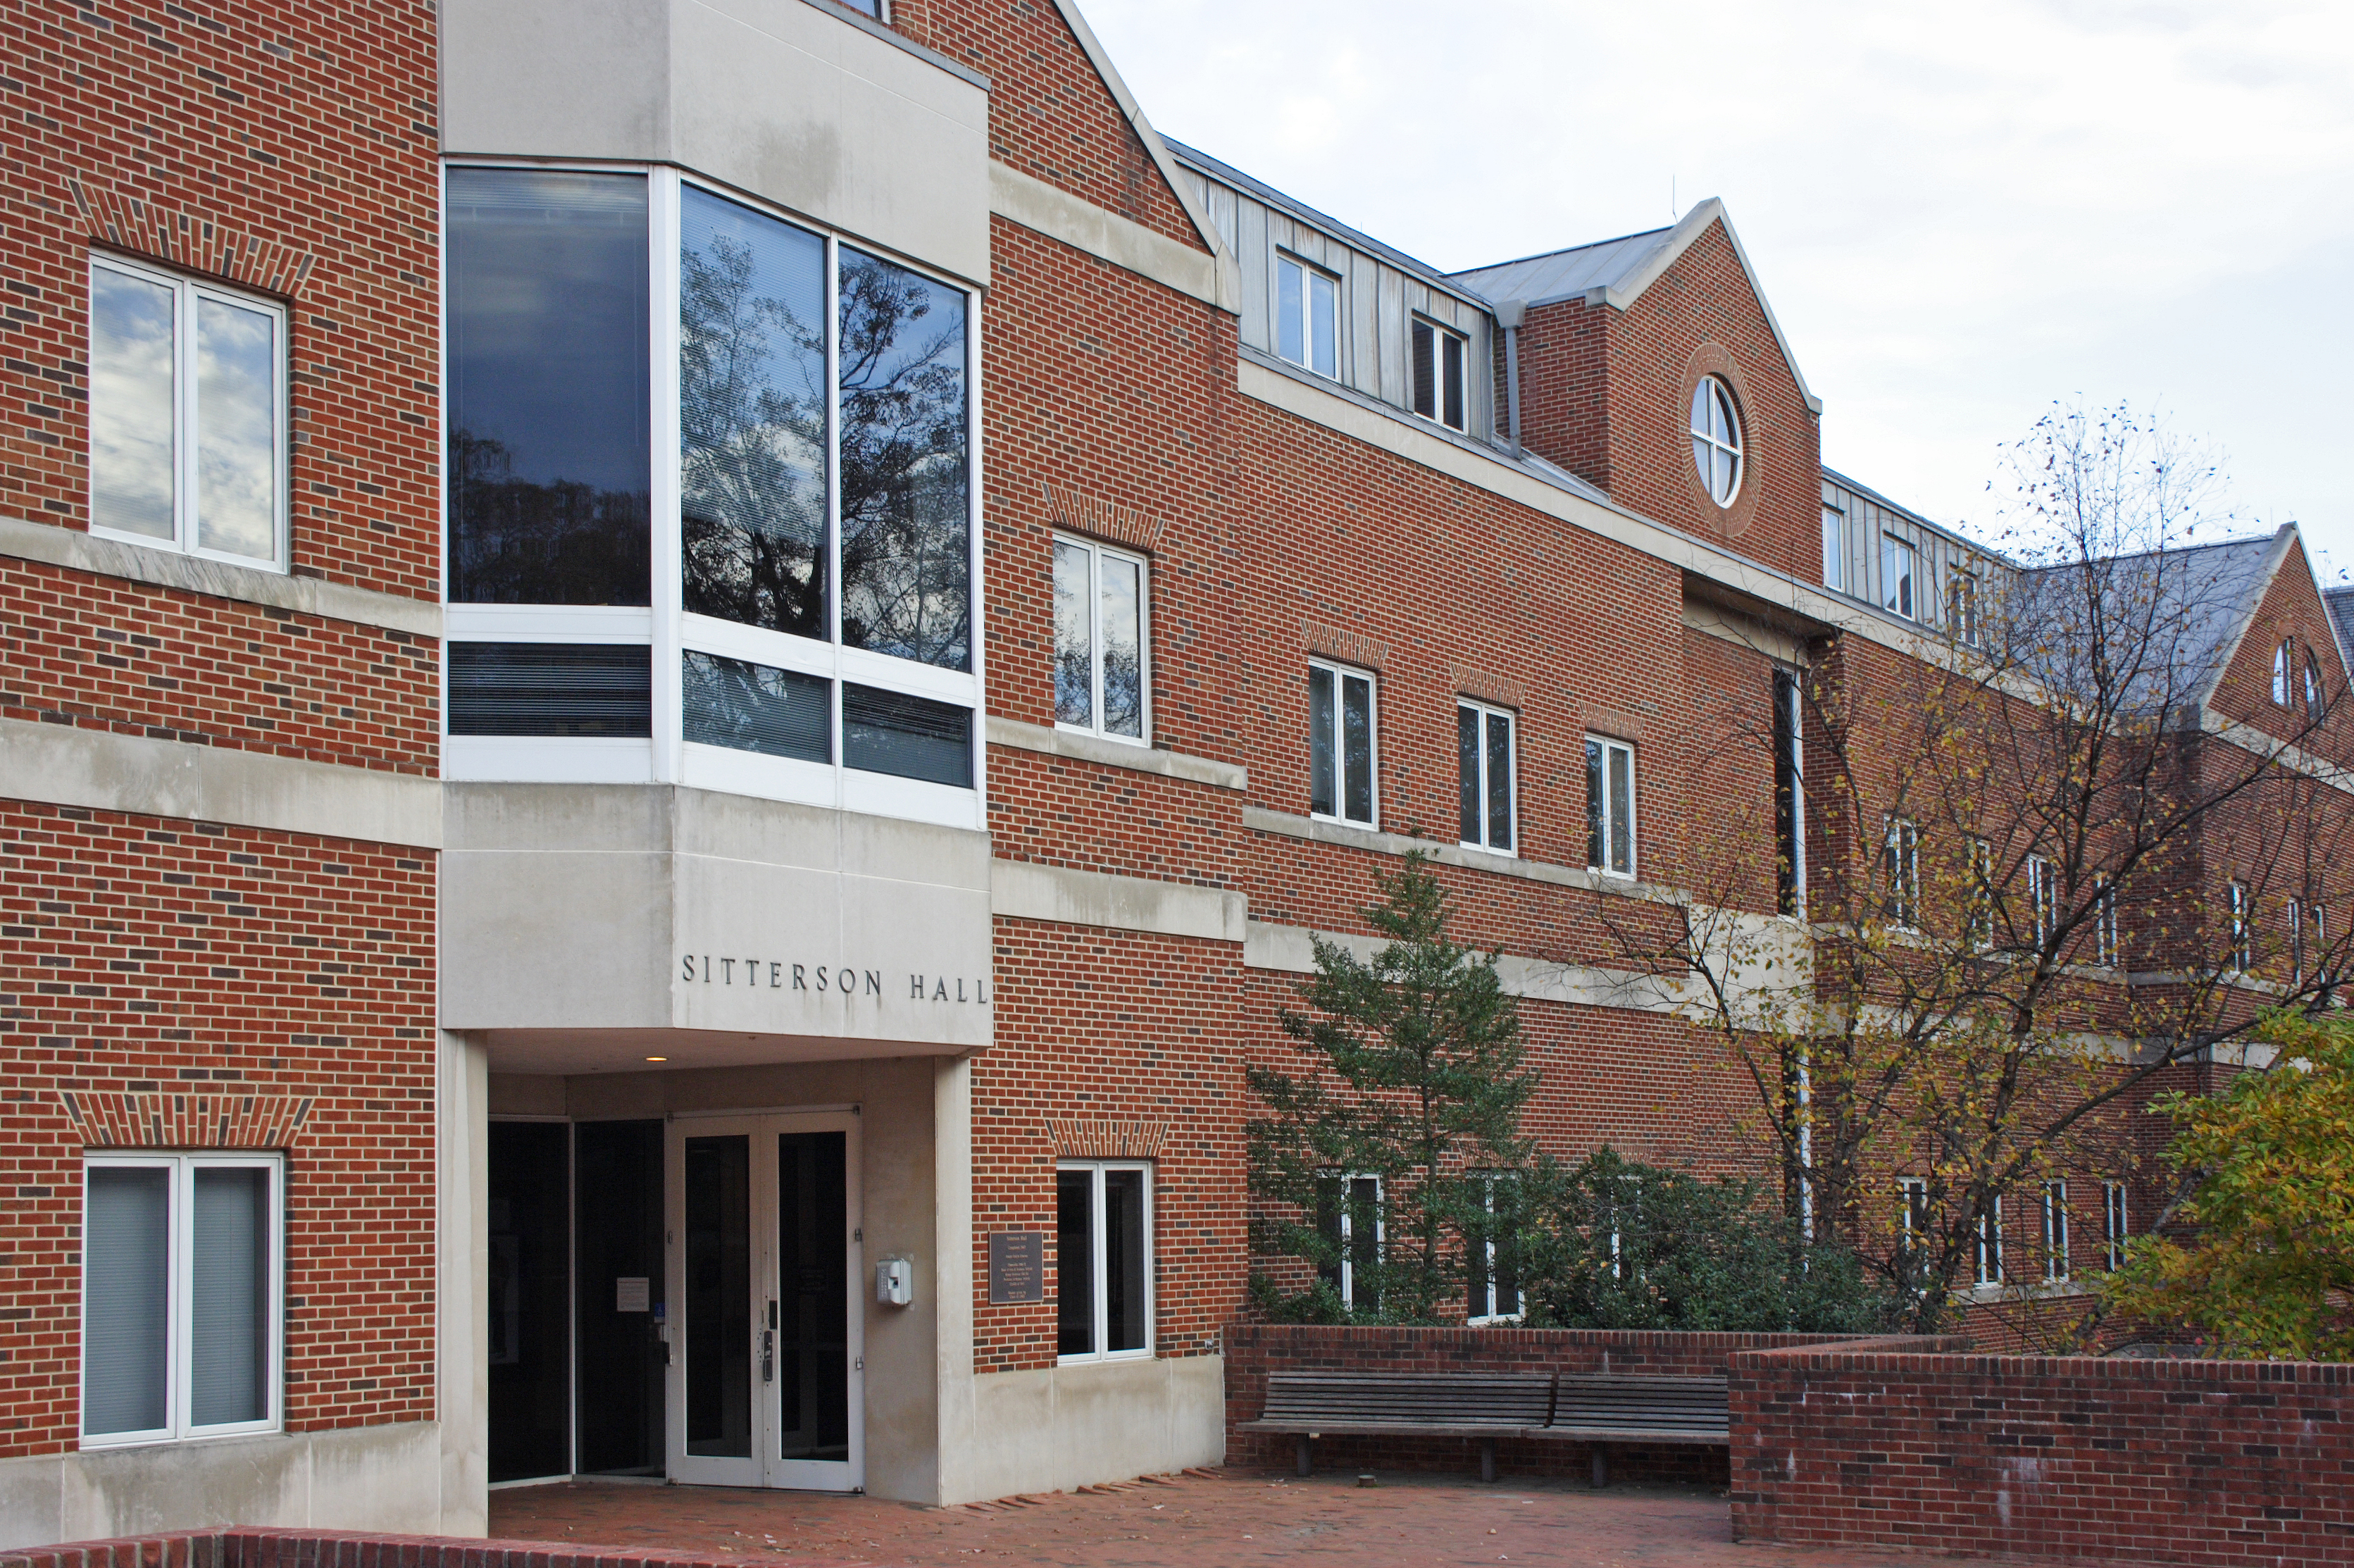 UNC's computer science department moved into Sitterson Hall in 1987.